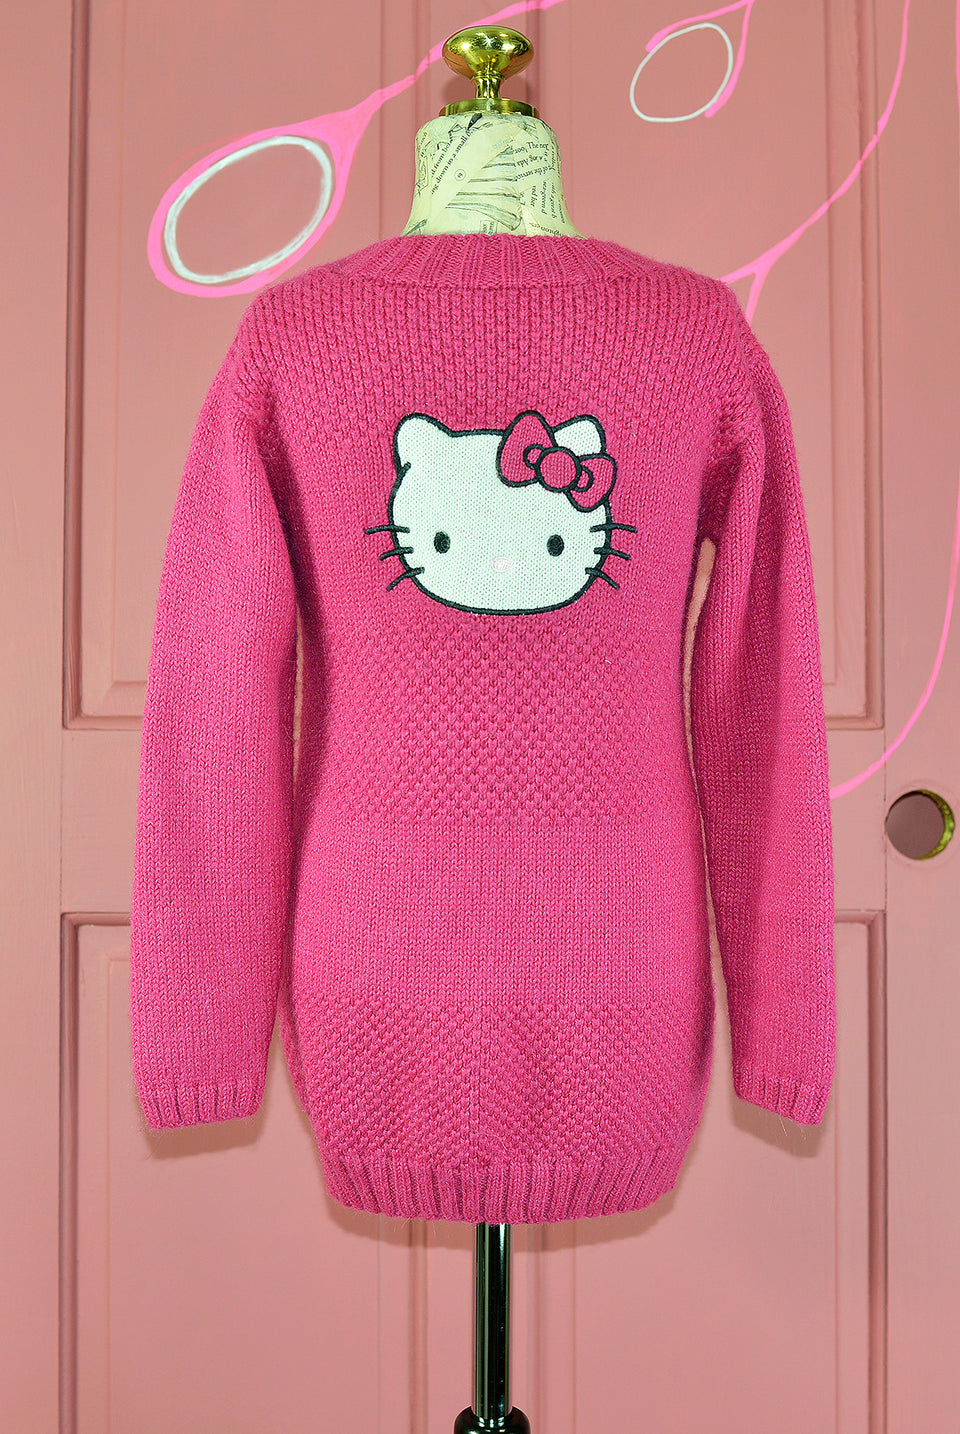 Sanrio HELLO KITTY Girls Long Pink Knitted Cardigan, Size 6 Years. Pre-loved.